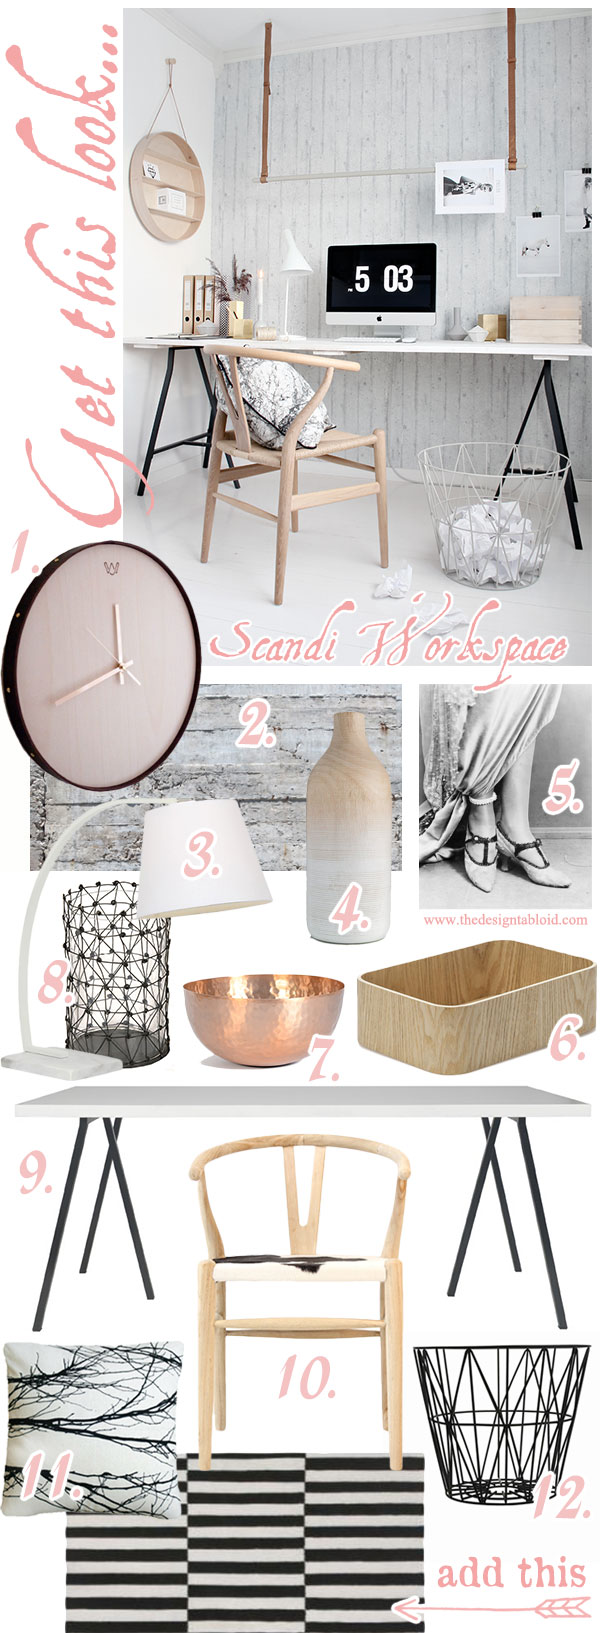 Get This Look: Scandi Workspace | via {The Design Tabloid}